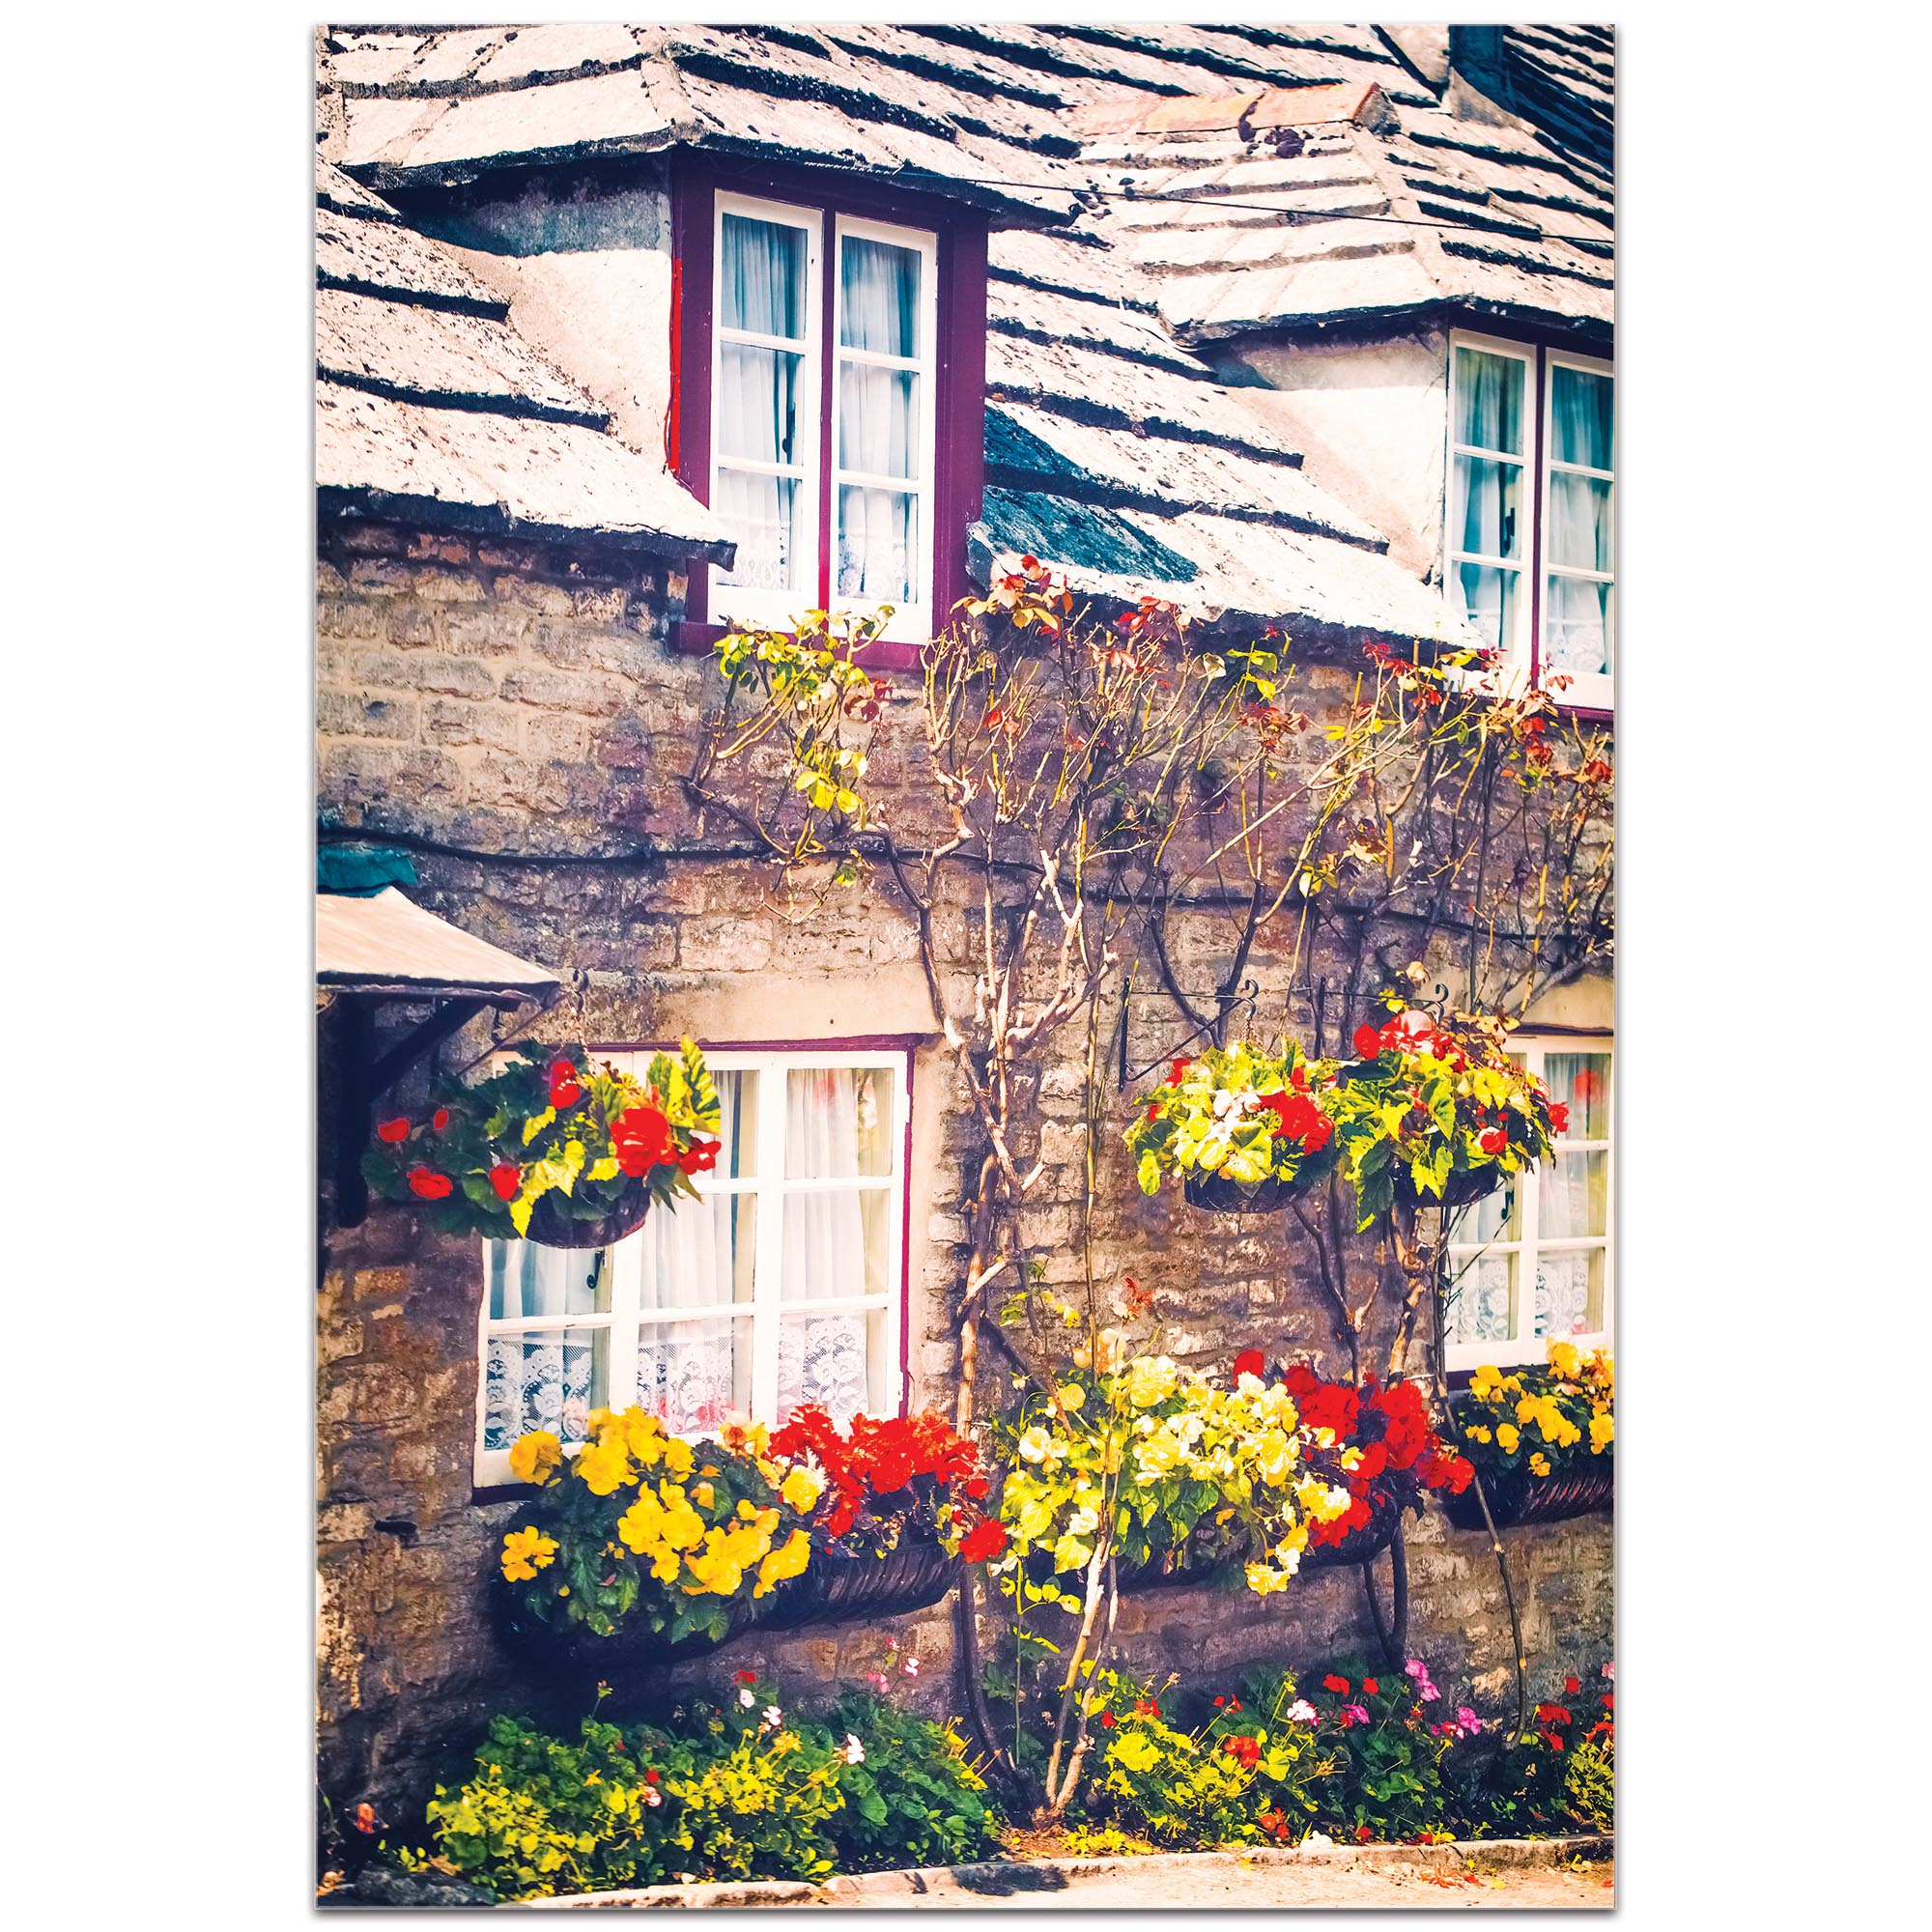 Cottage Wall Art 'Flowered Bricks' - Brick House Decor on Metal or Plexiglass - Image 2